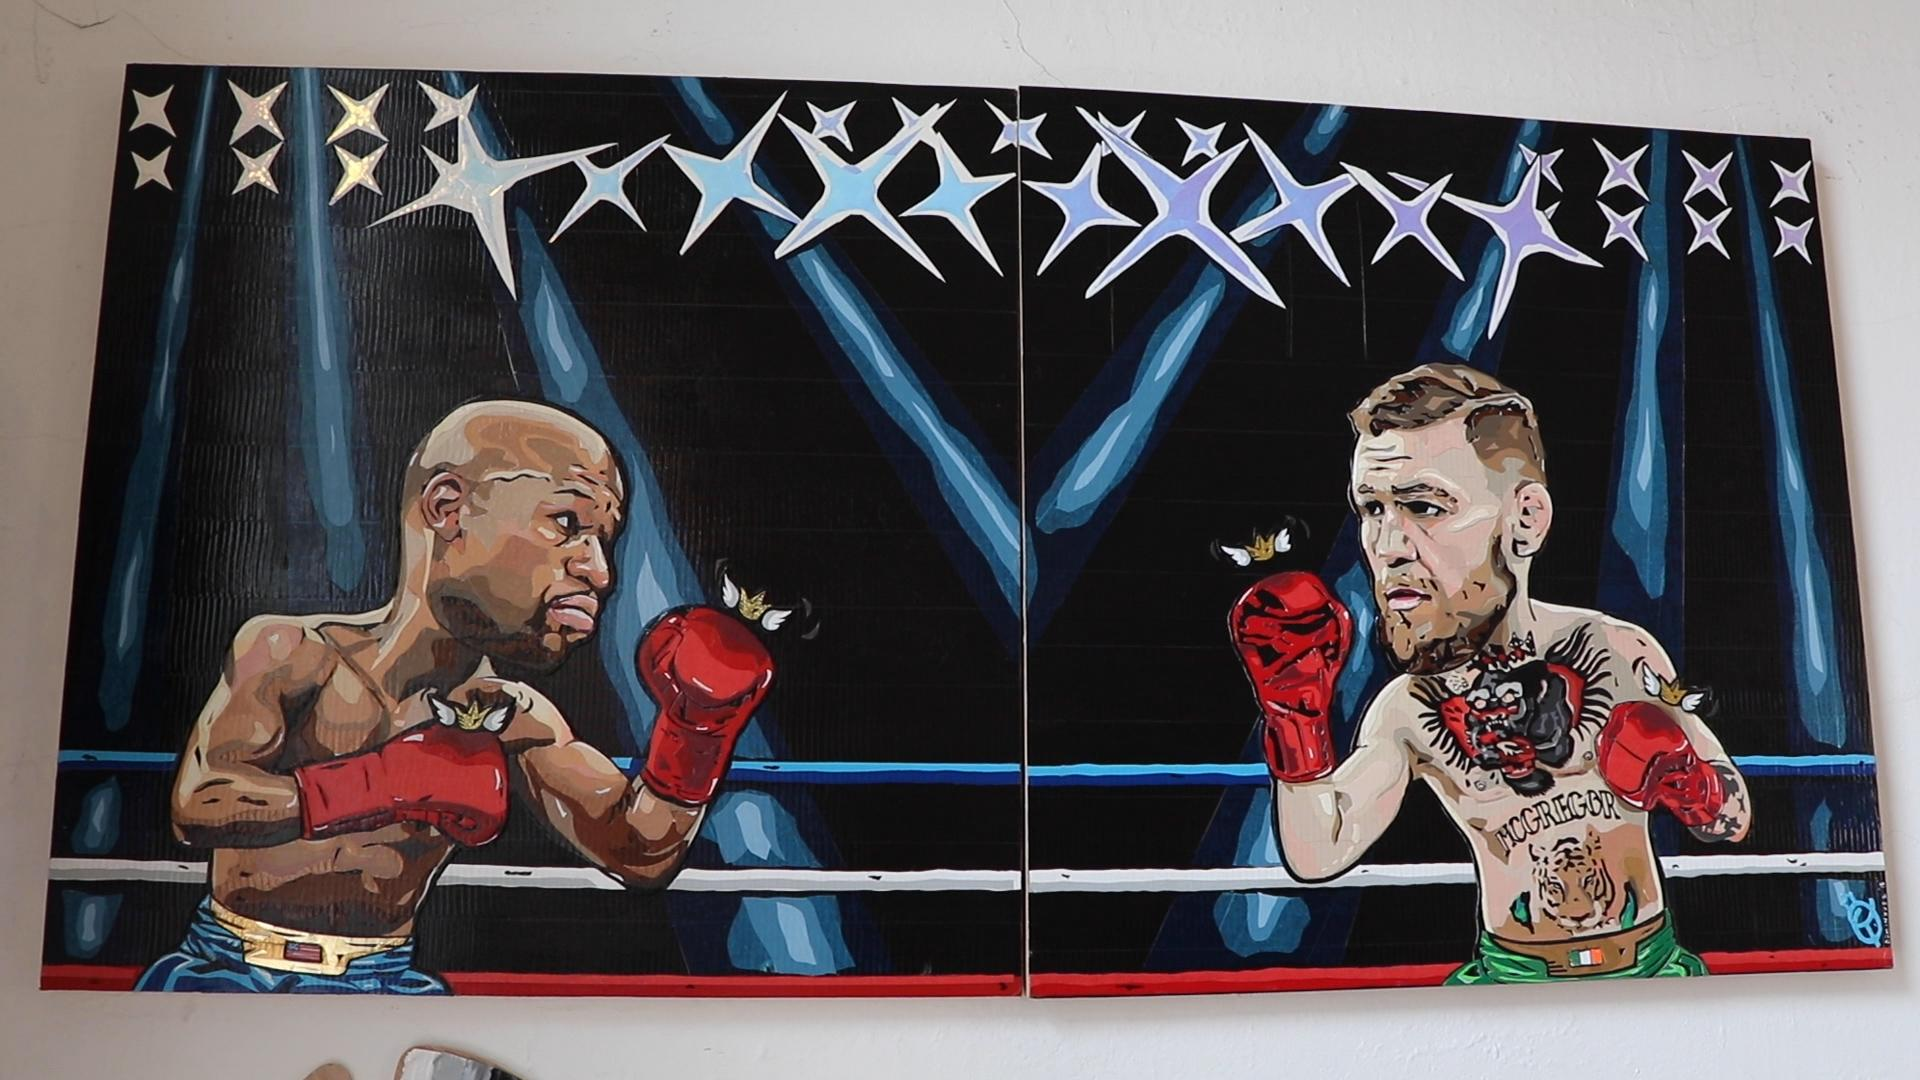 Artist and sports fan Anna Dominguez taped together this depiction of the August 2017 boxing match between Floyd Mayweather Jr. and Conor McGregor. (Evan Garcia / WTTW News)